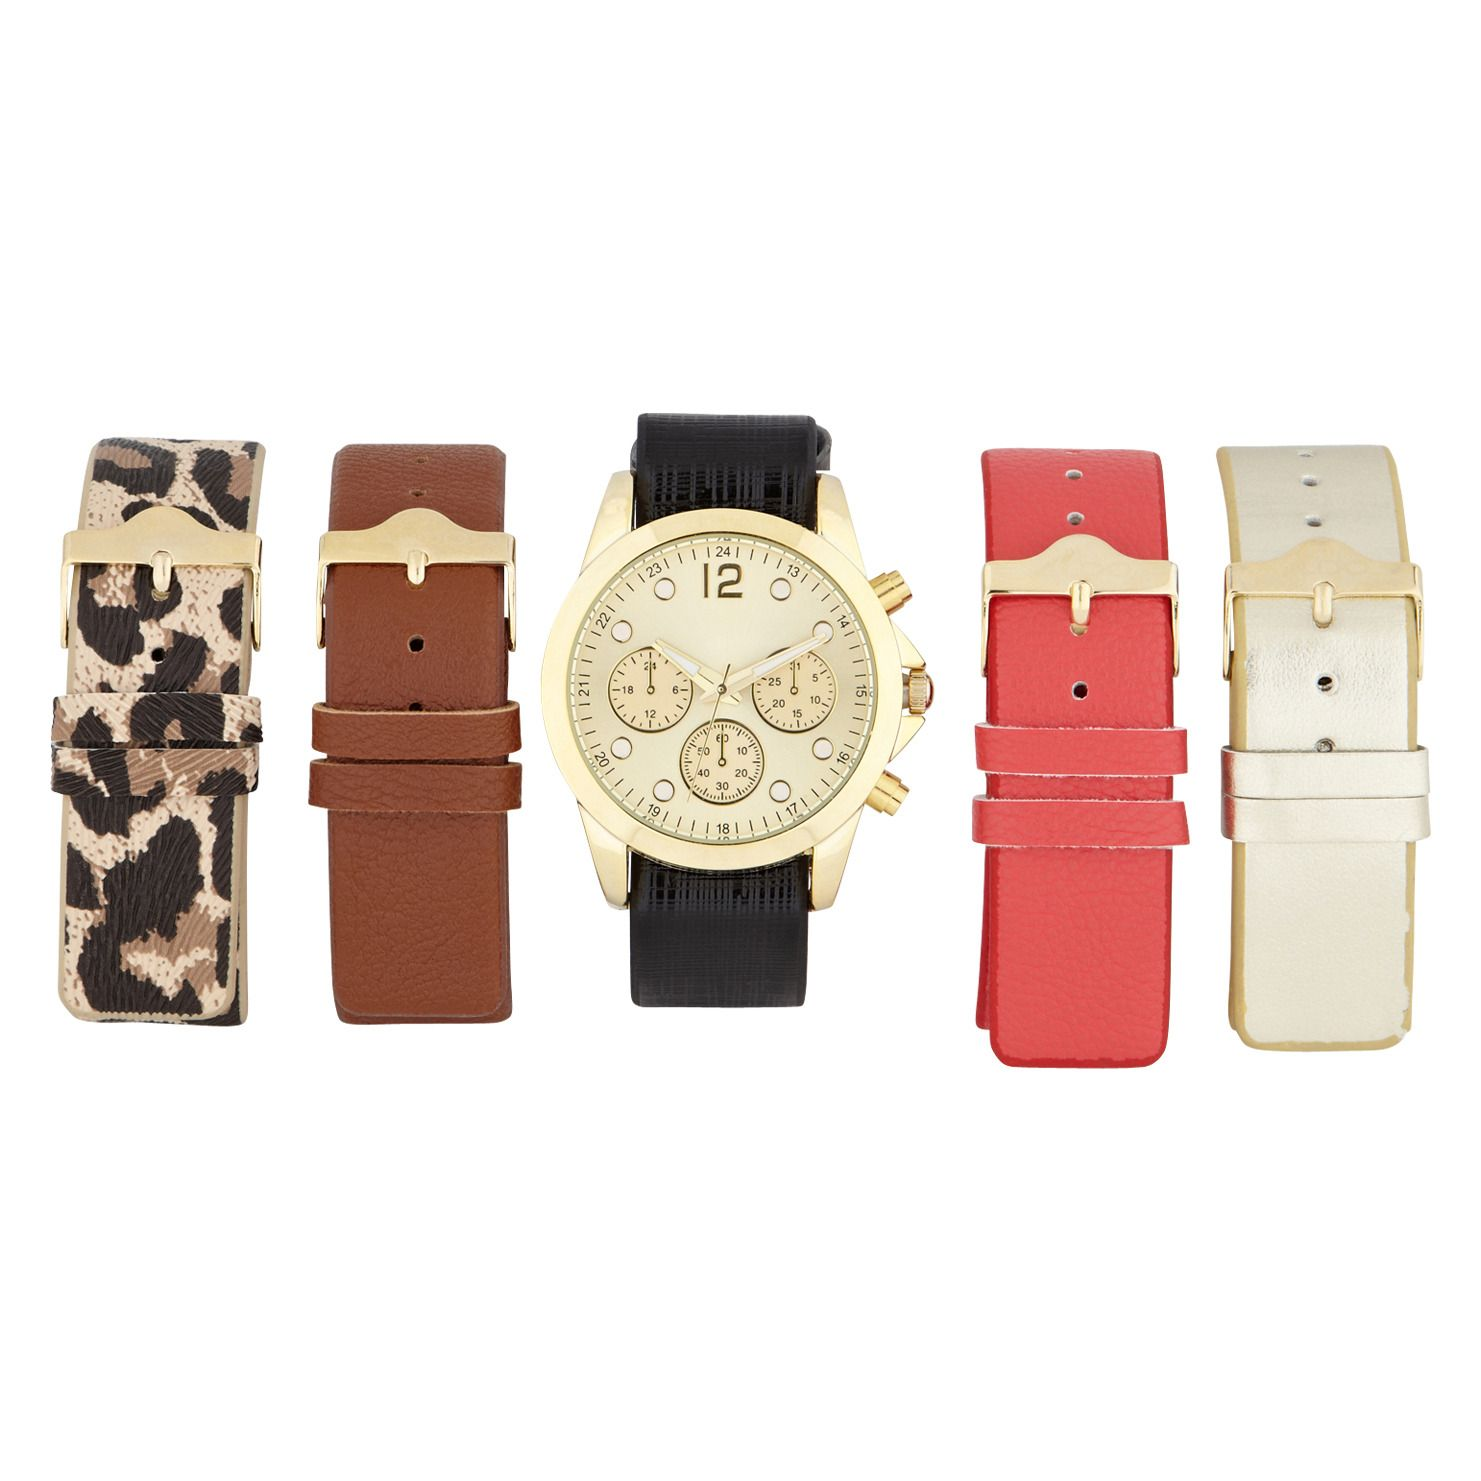 BLAIRMORE - accessories's watches women's for sale at ALDO ...